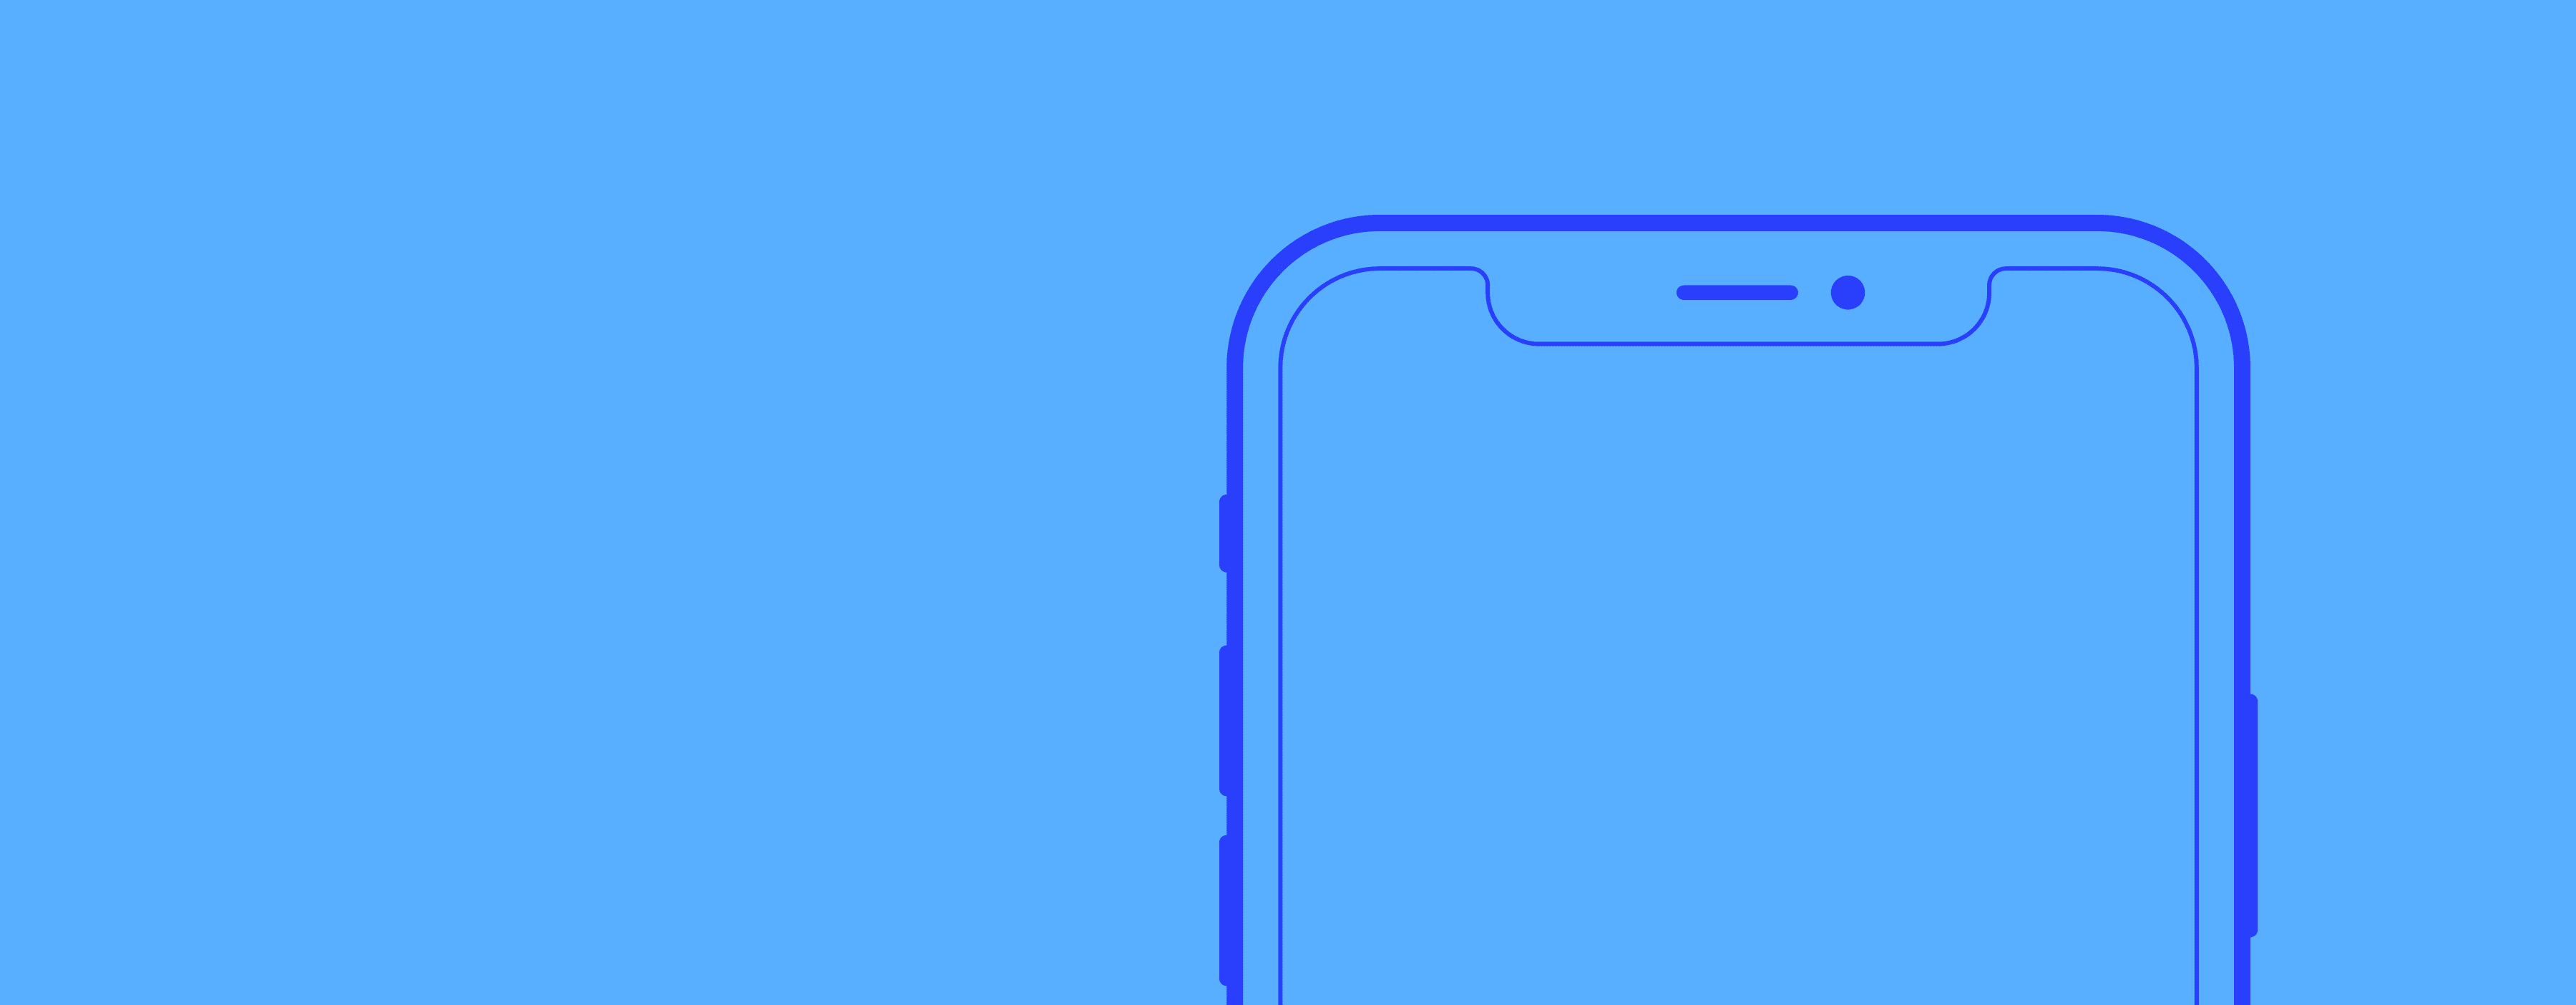 iPhone wireframe drawing